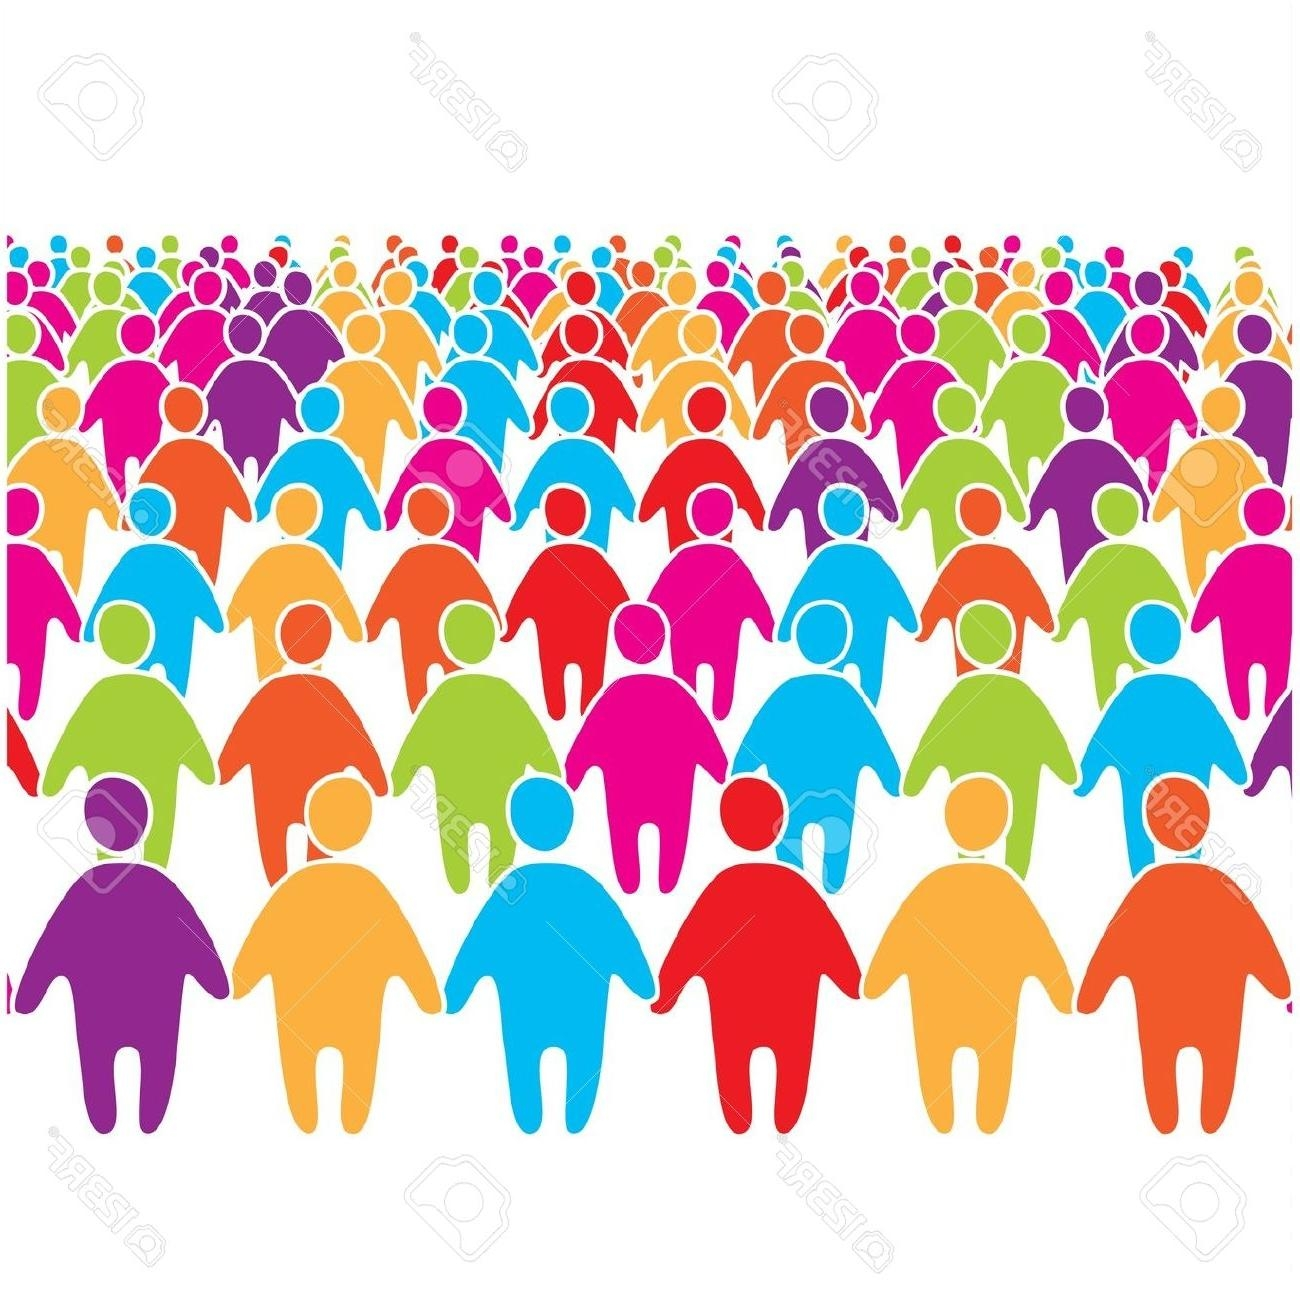 Crowd people clipart svg transparent download Crowd of people clipart Elegant Crowd clipart large crowd ... svg transparent download